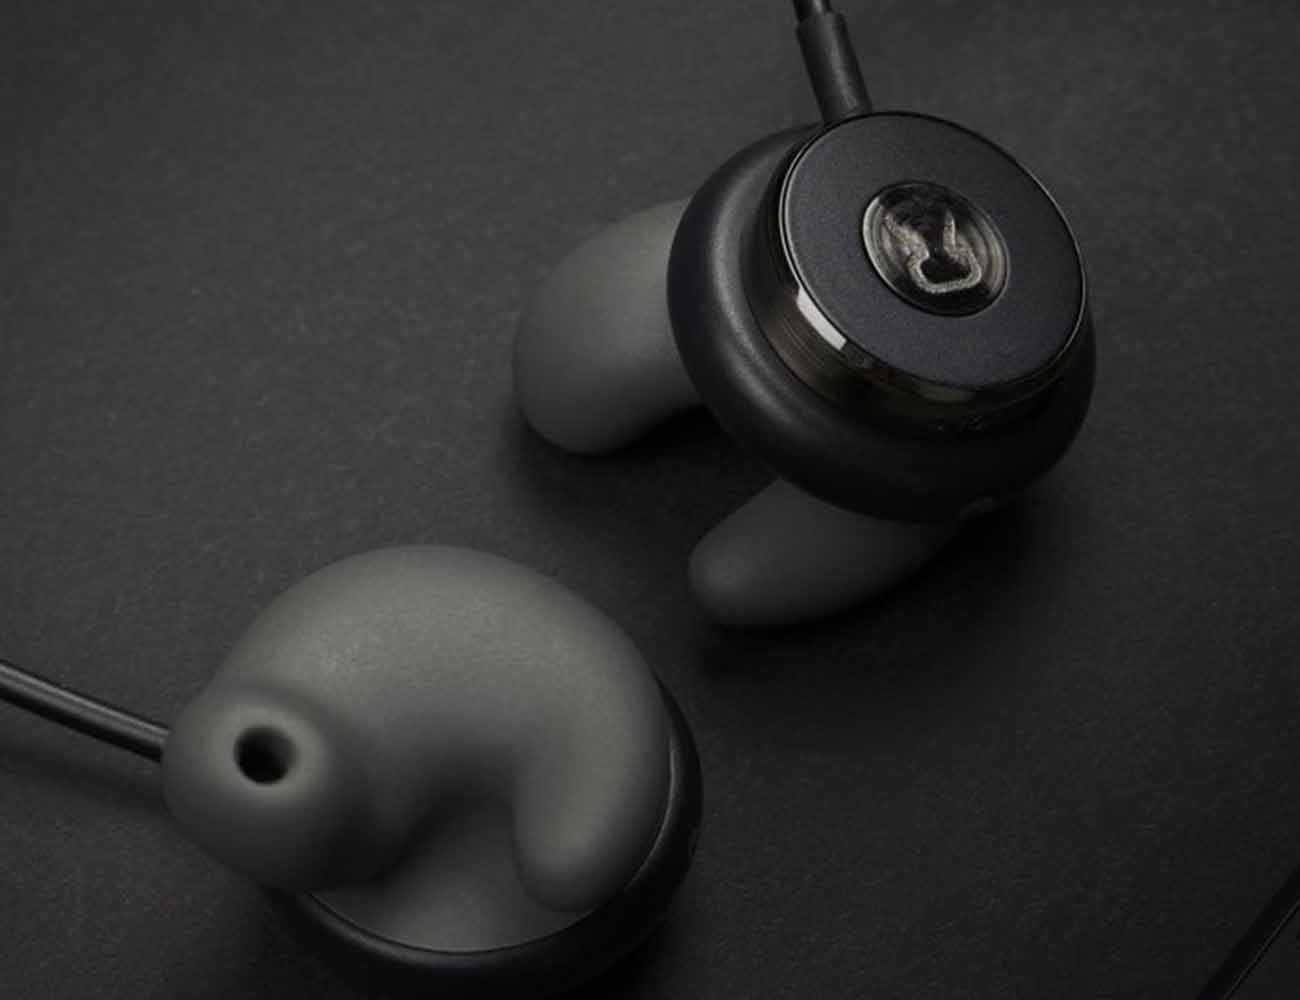 Revols – Premium Quick Custom Fit Wireless Earphones